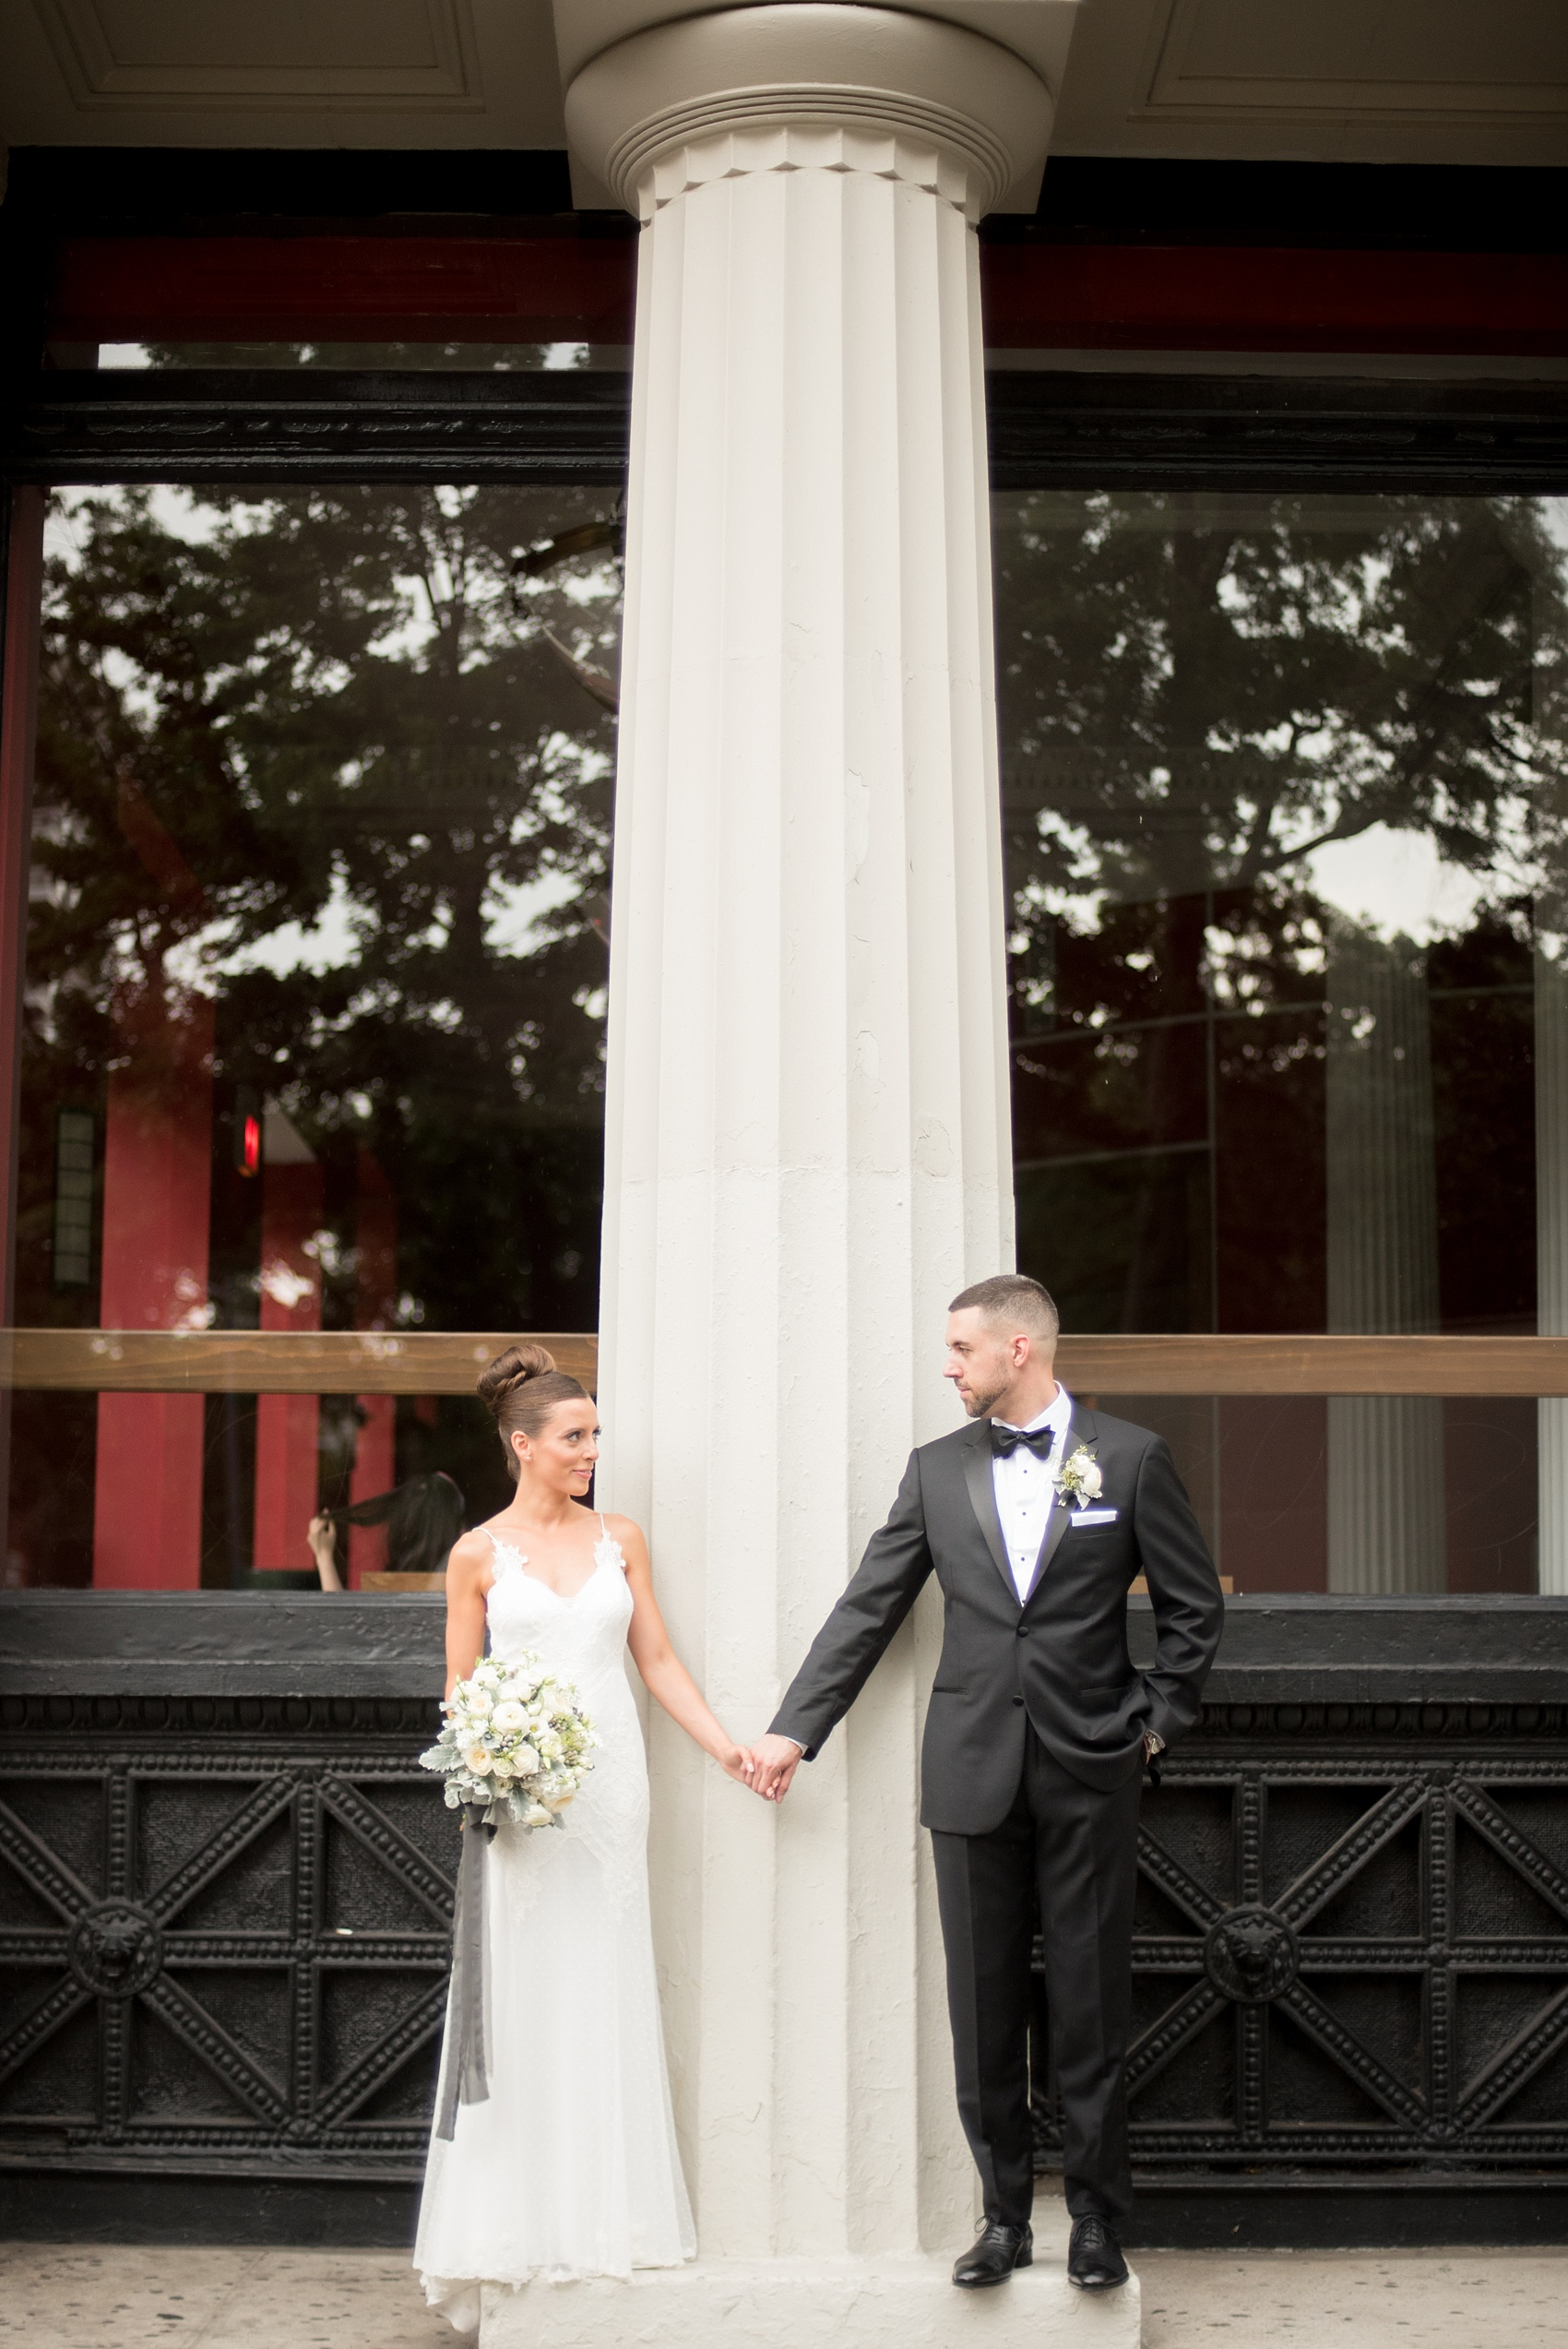 Mikkel Paige Photography photos of a luxury wedding in NYC. Image of the bride and groom near Washington Square Park with white columns.